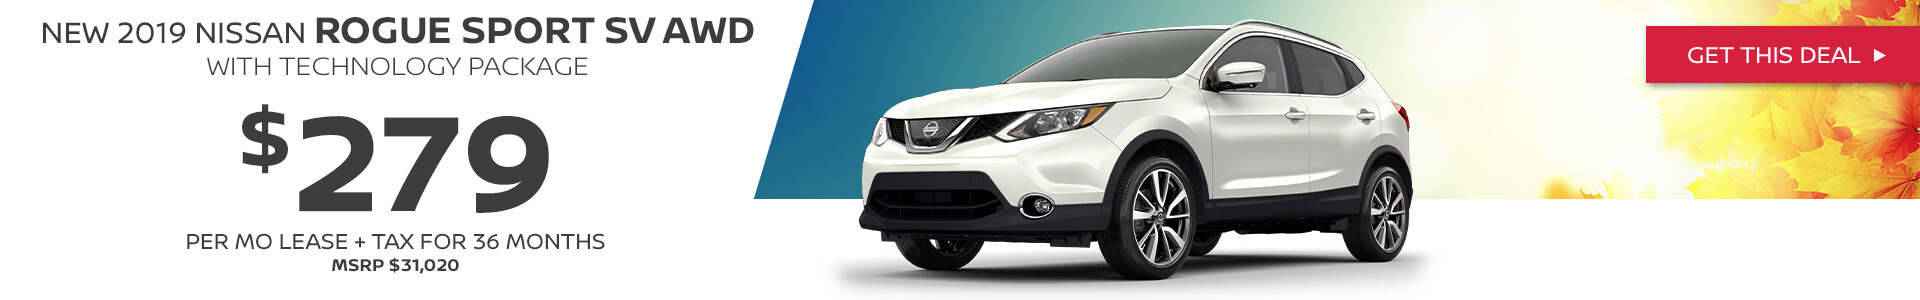 Nissan Rouge SV - Lease for $279